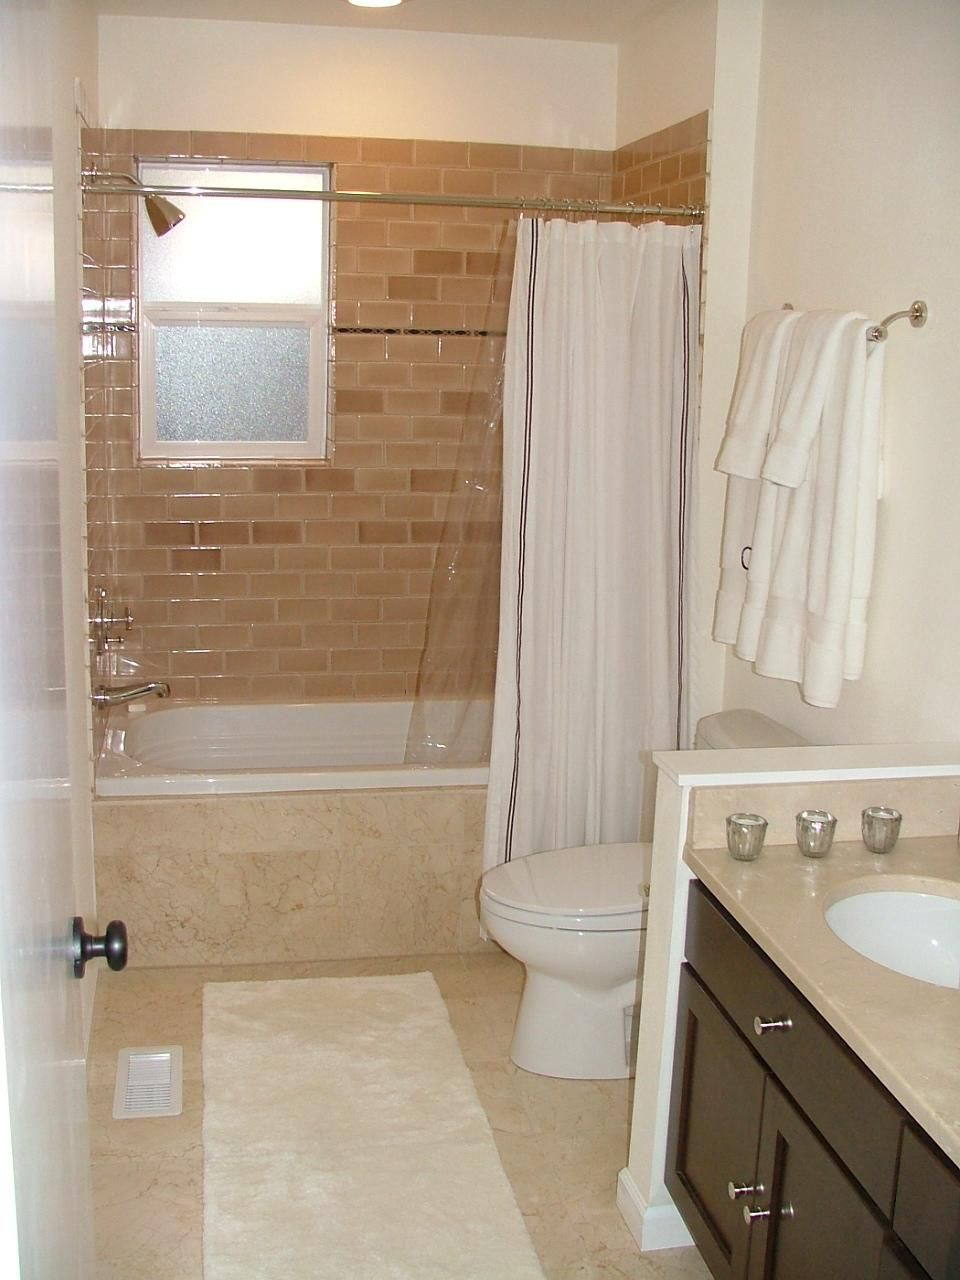 Small Bathrooms Are Less Expensive To Remodel Compared With A - Bathroom area rugs for bathroom decorating ideas